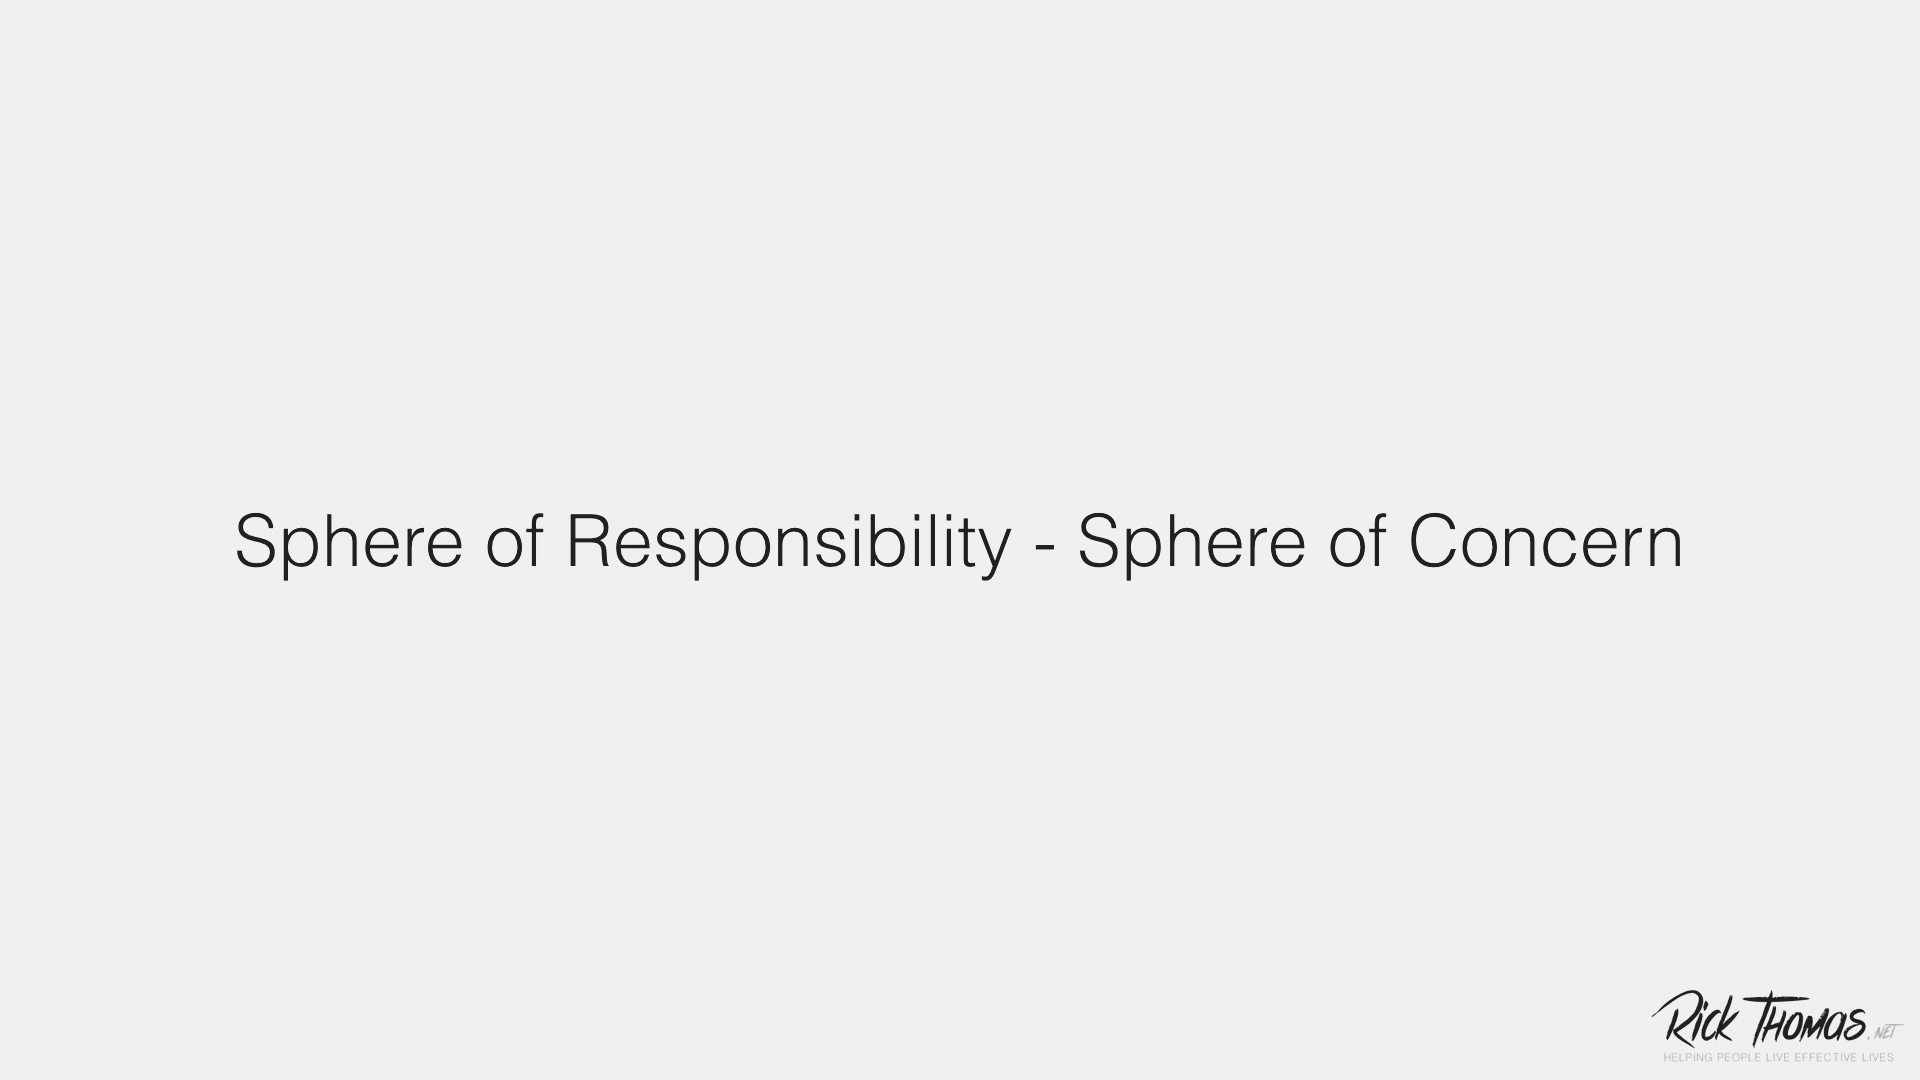 Video Channel Sphere of Responsibility and Sphere of Concern01